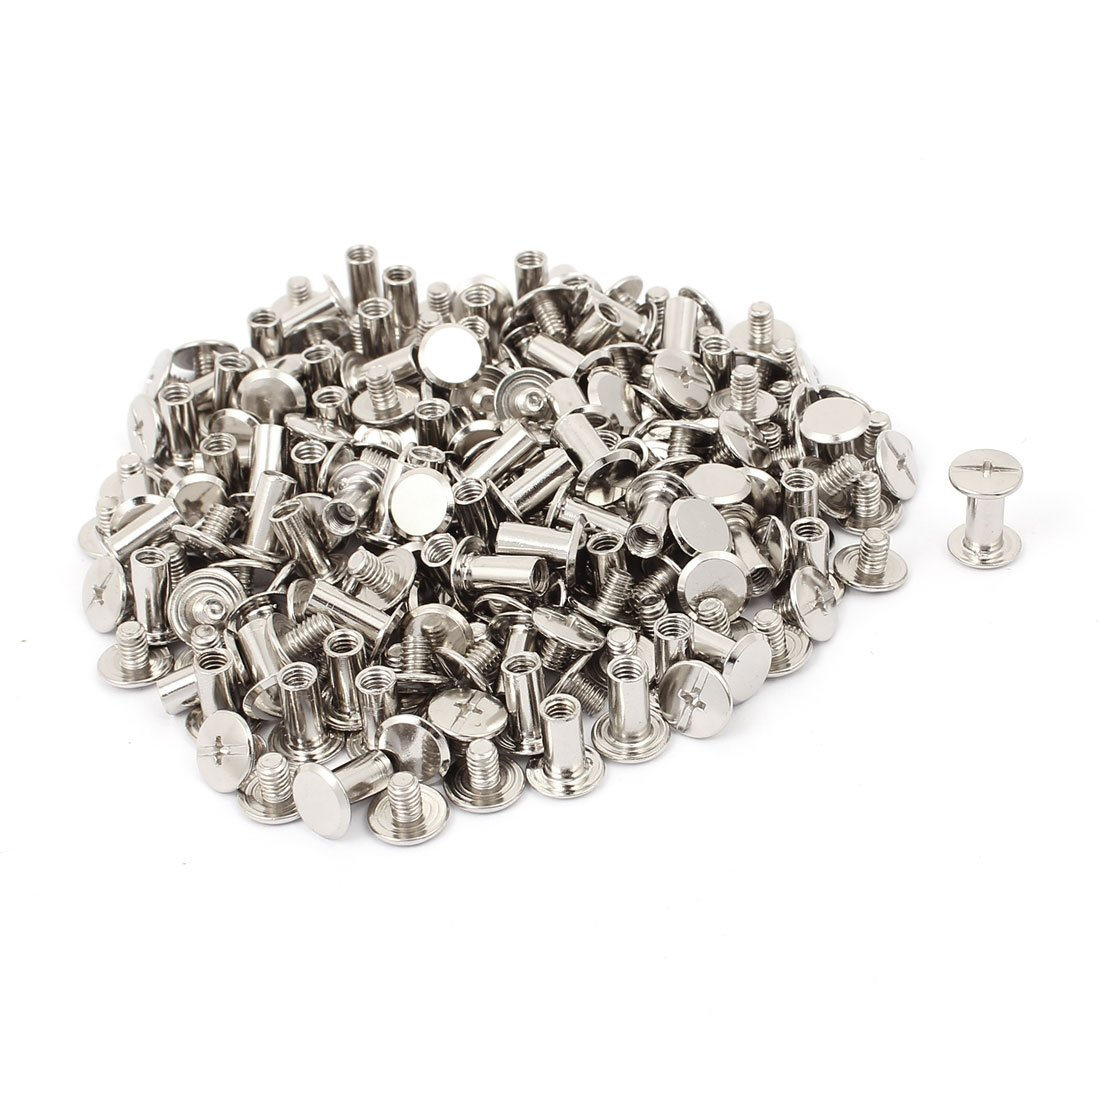 uxcell M5x10mm Binding Chicago Screw Post Silver